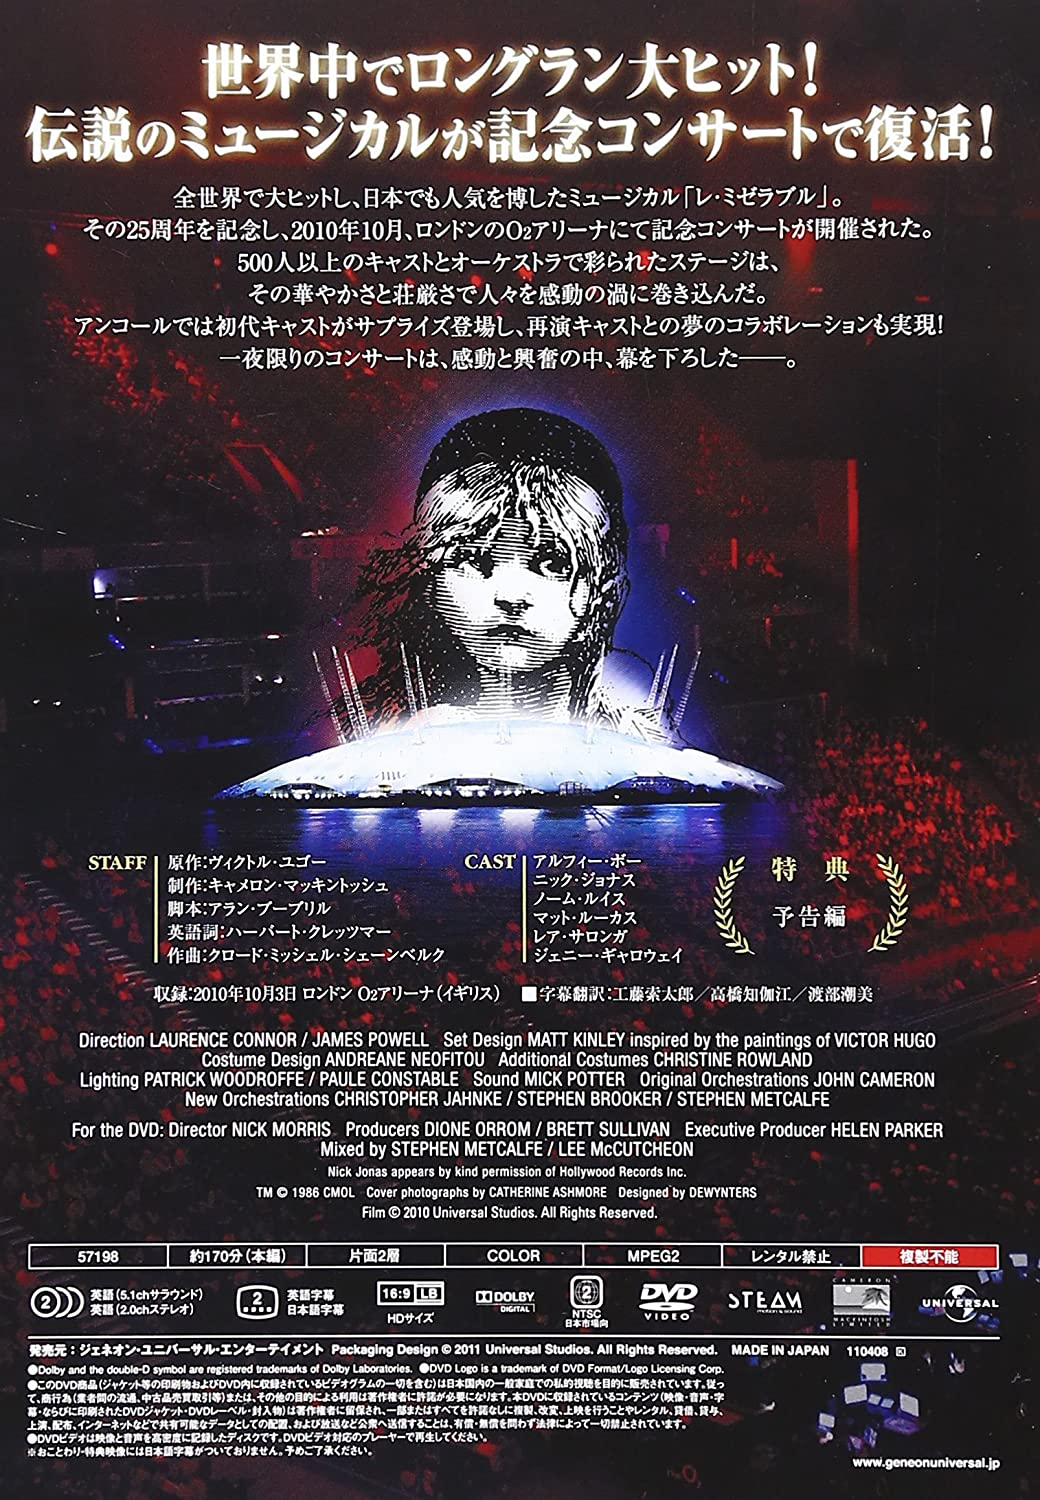 com movie les miserables th anniversary in concert com movie les miserables 25th anniversary in concert dvd gnbf 3083 movies tv